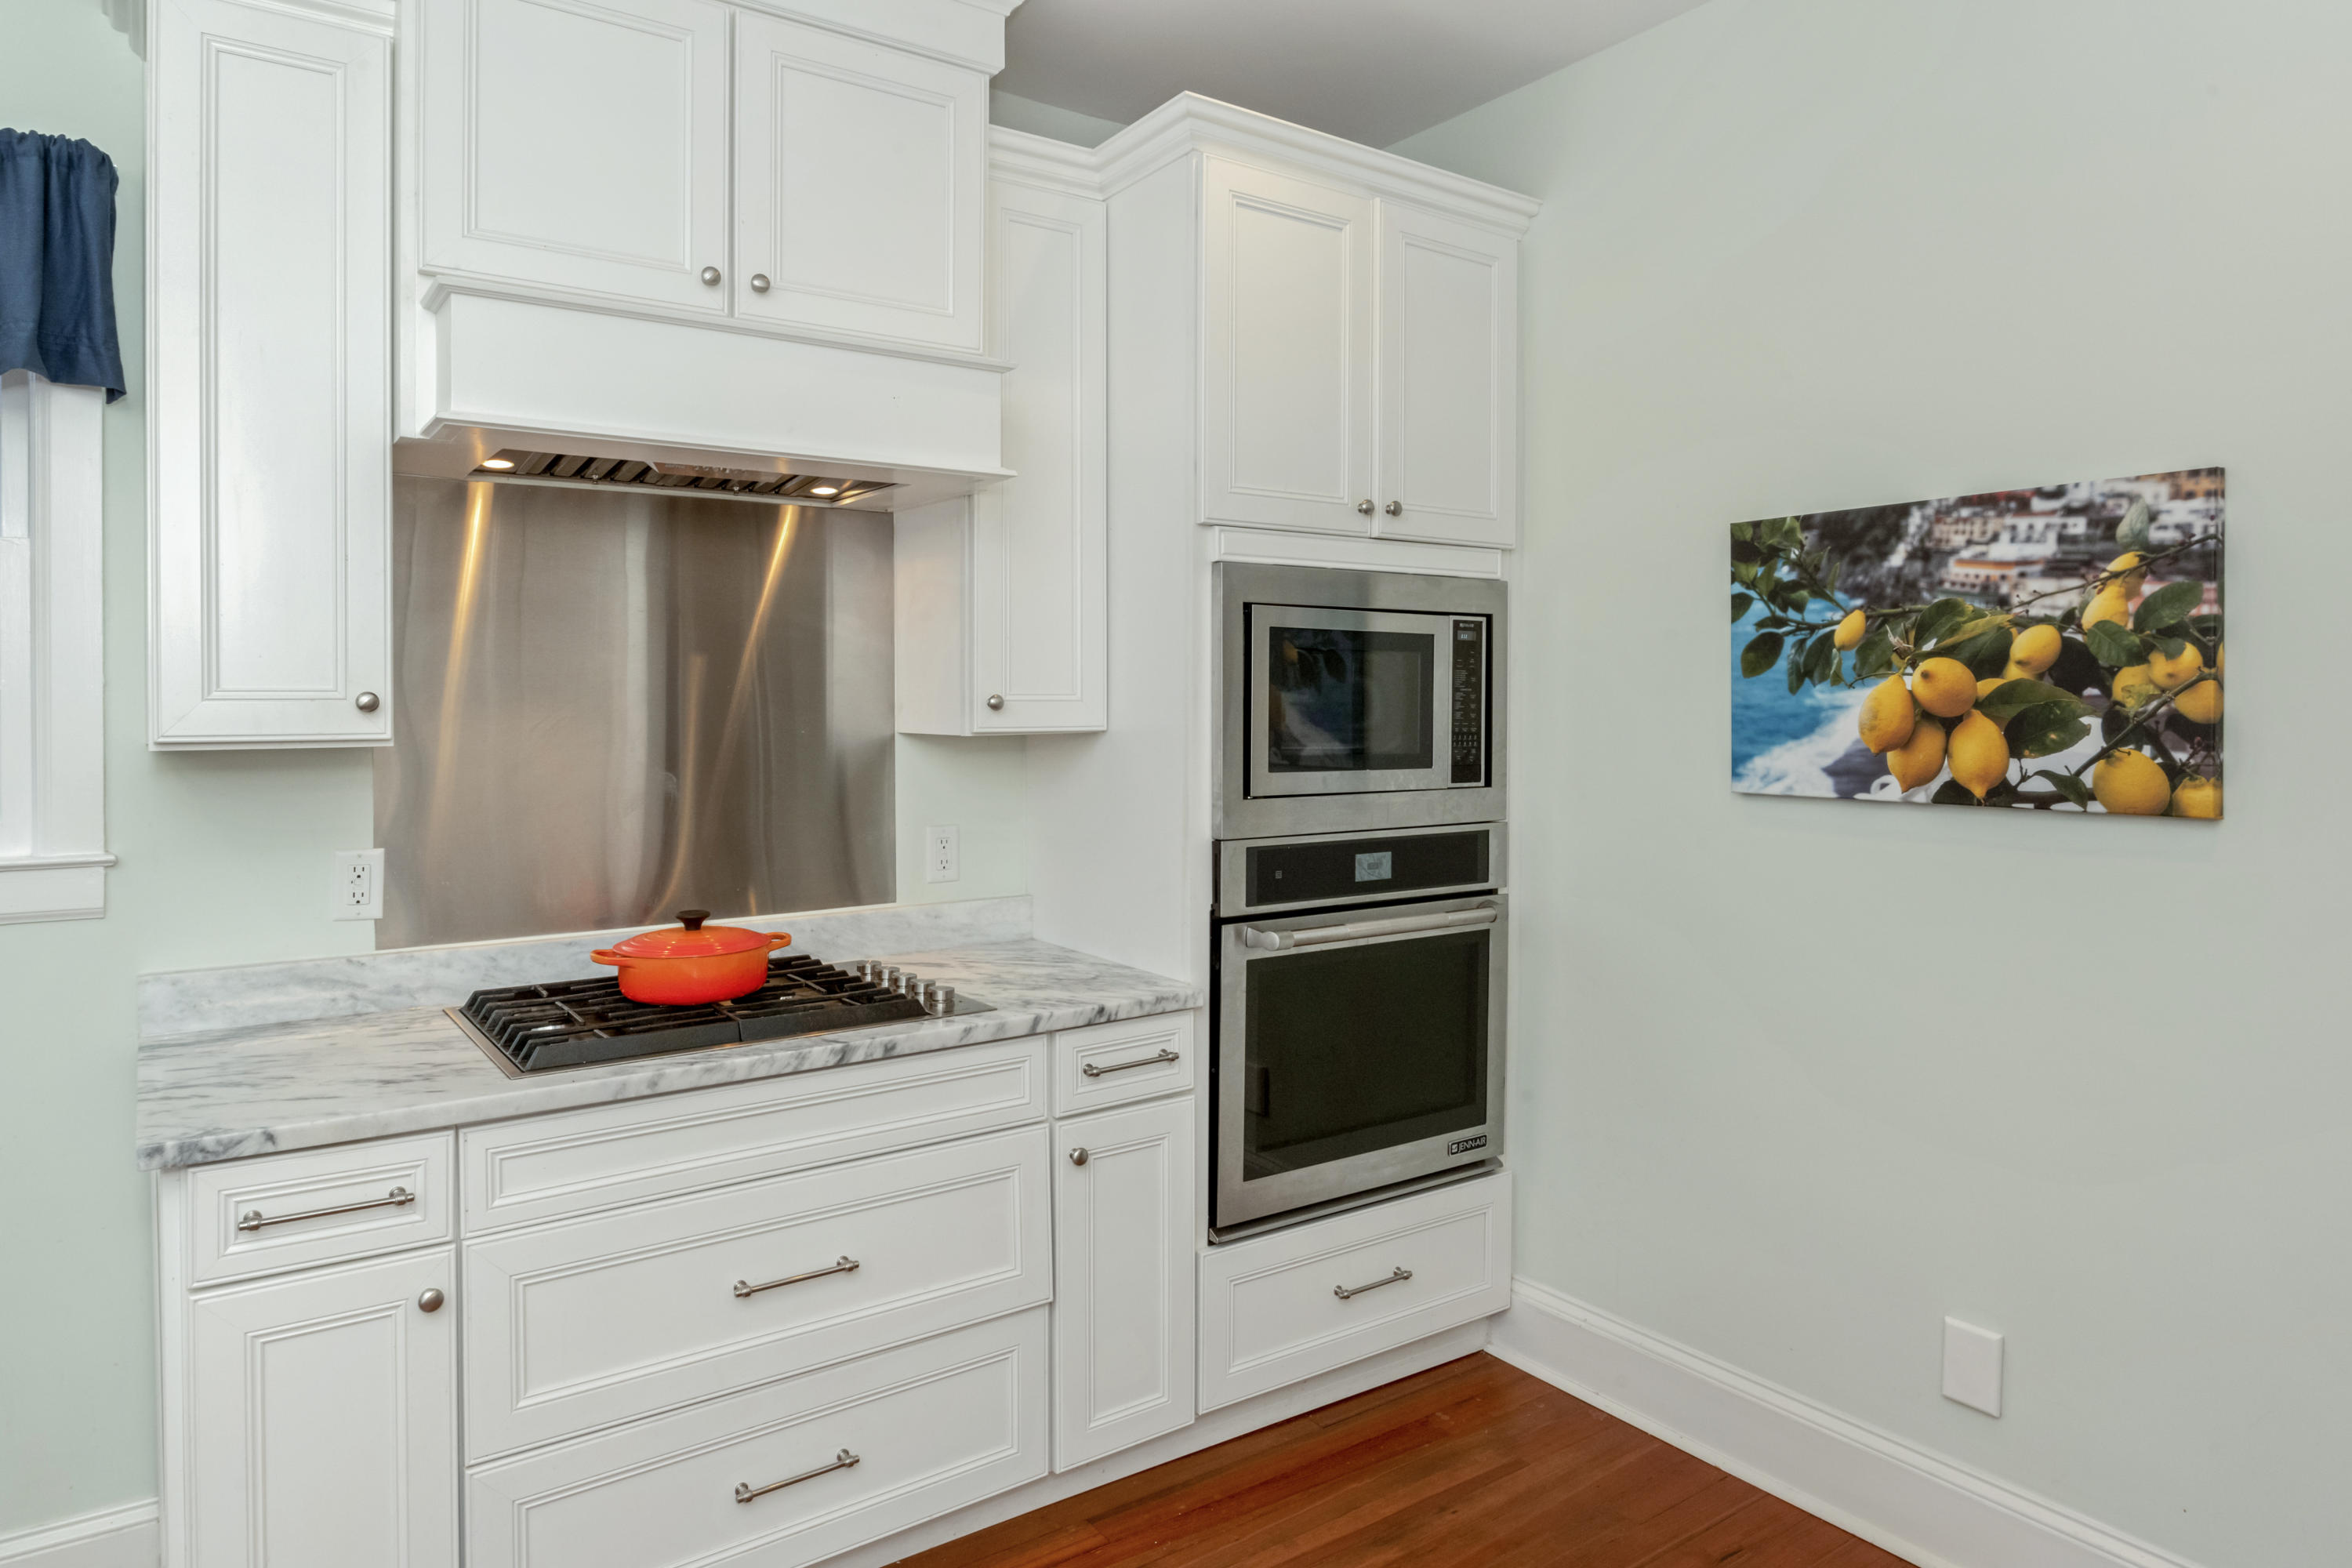 South of Broad Homes For Sale - 4 Weims, Charleston, SC - 13